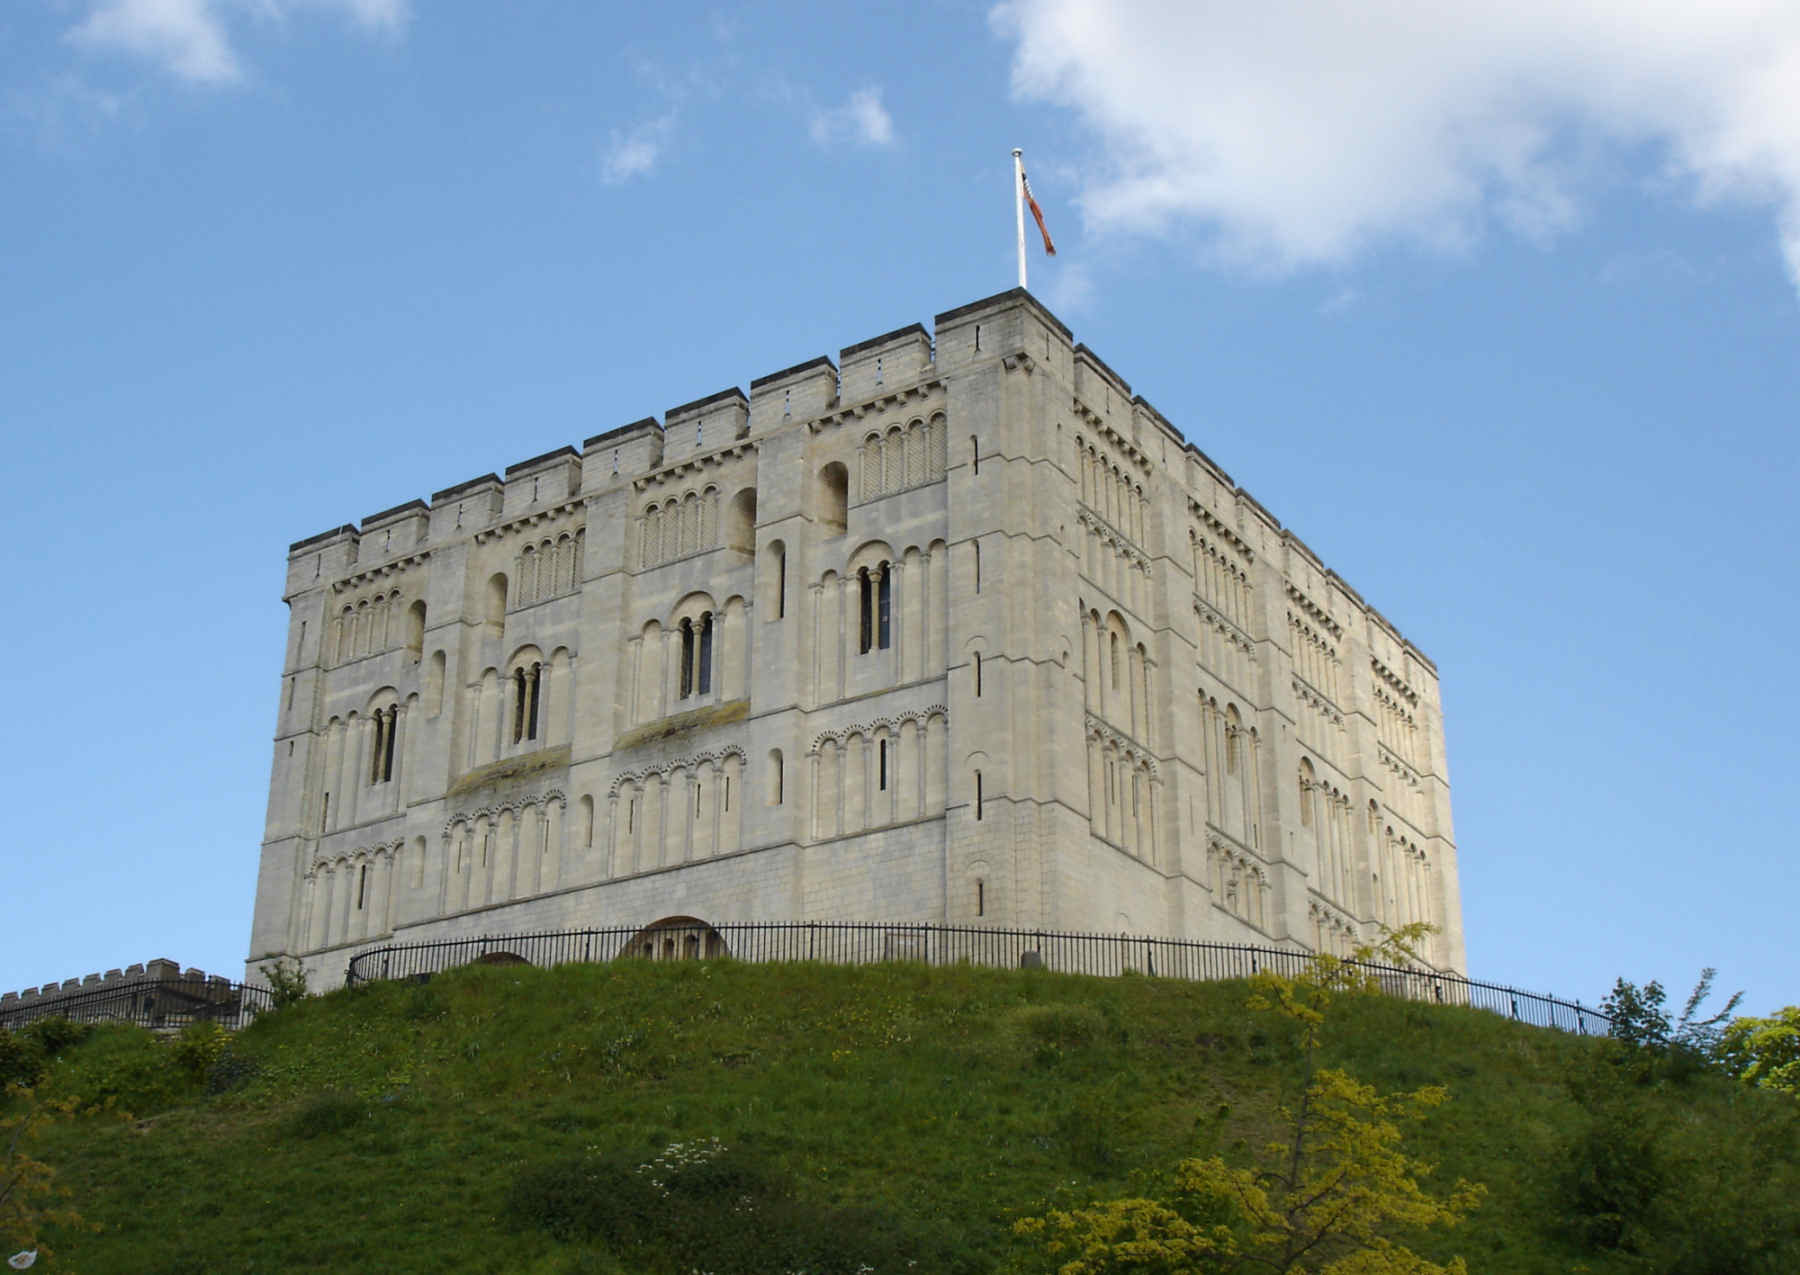 the origin of norwich castle Norwich castle: gateway to medieval england will address this issue, providing an unforgettable visitor experience worthy of the building's fascinating 900-year history latest news report exposes 14 year difference in life expectancy.